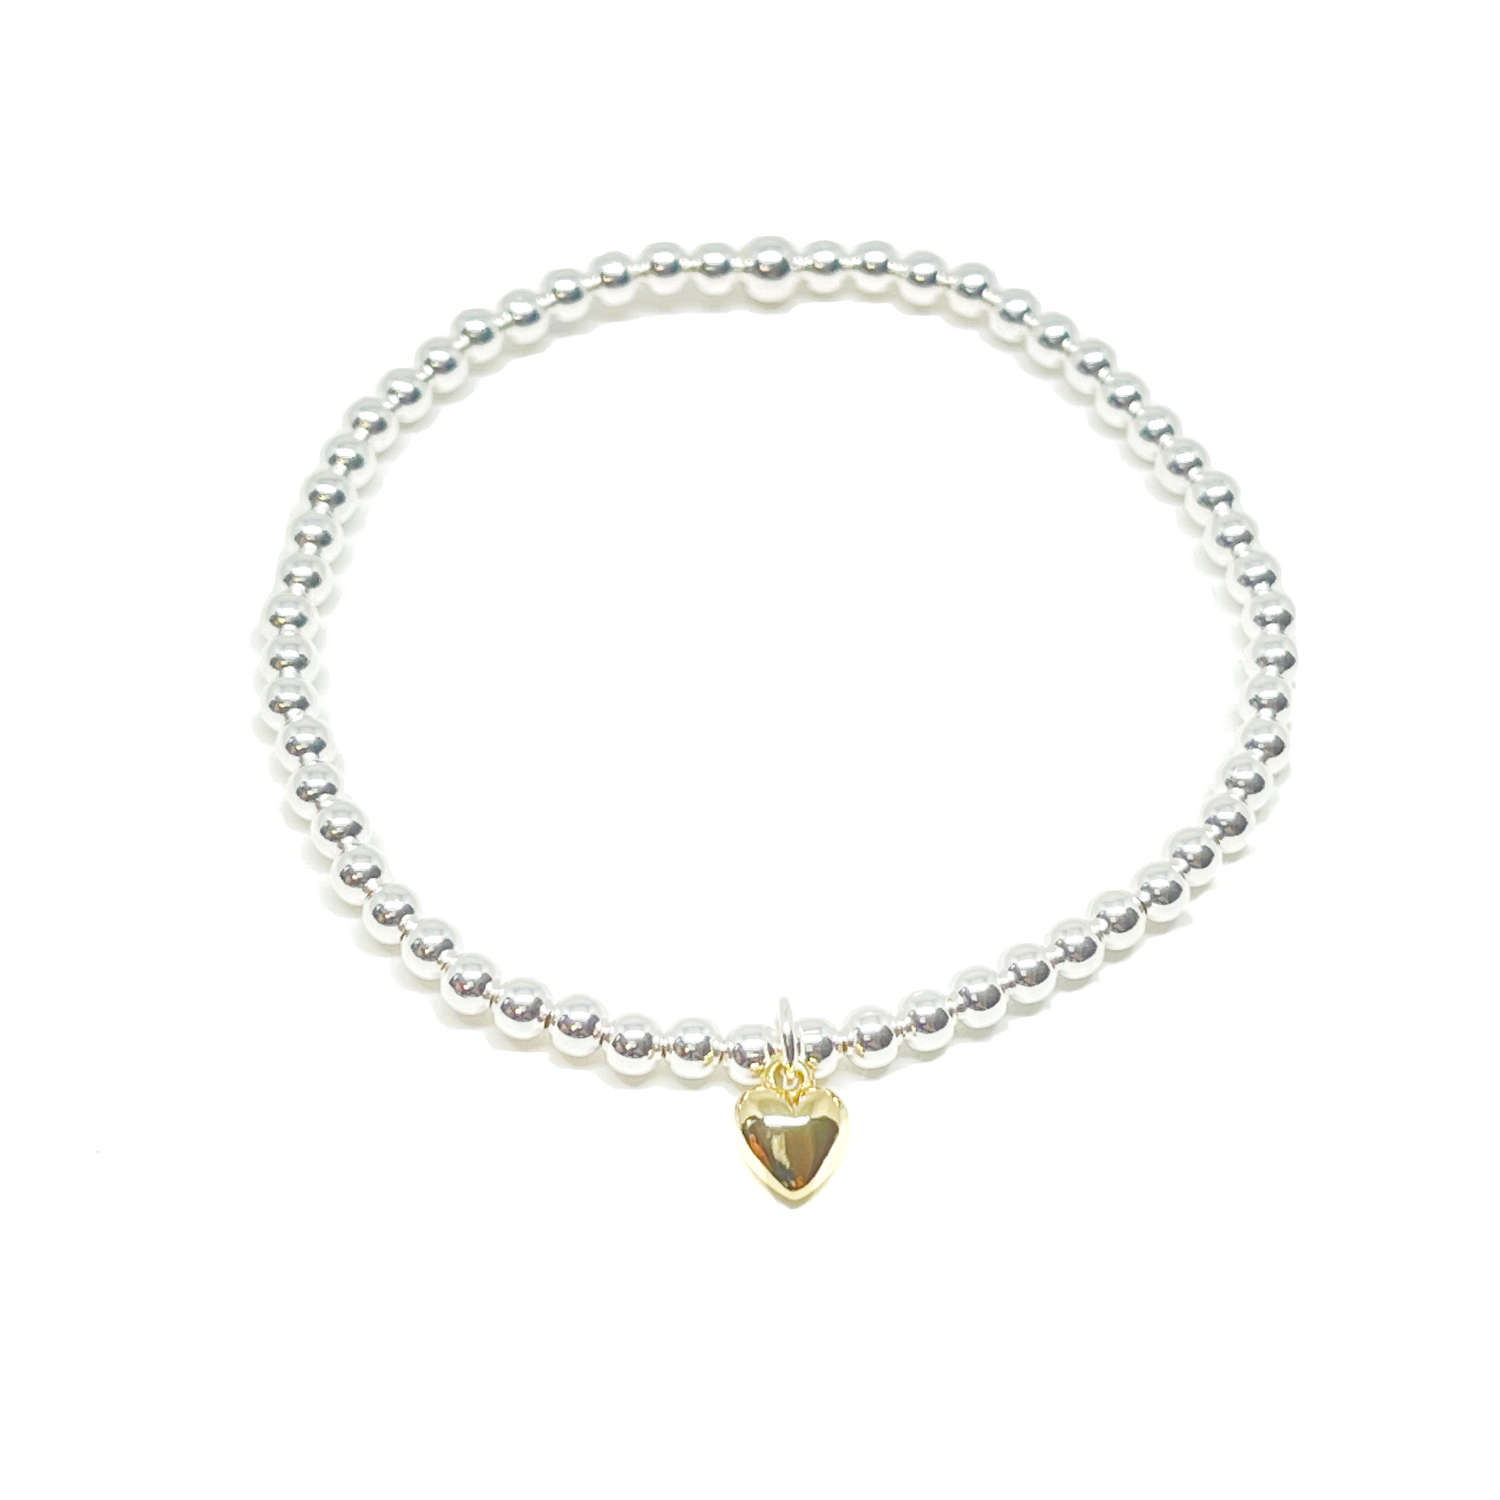 Maisy Mini Heart Bracelet - Gold